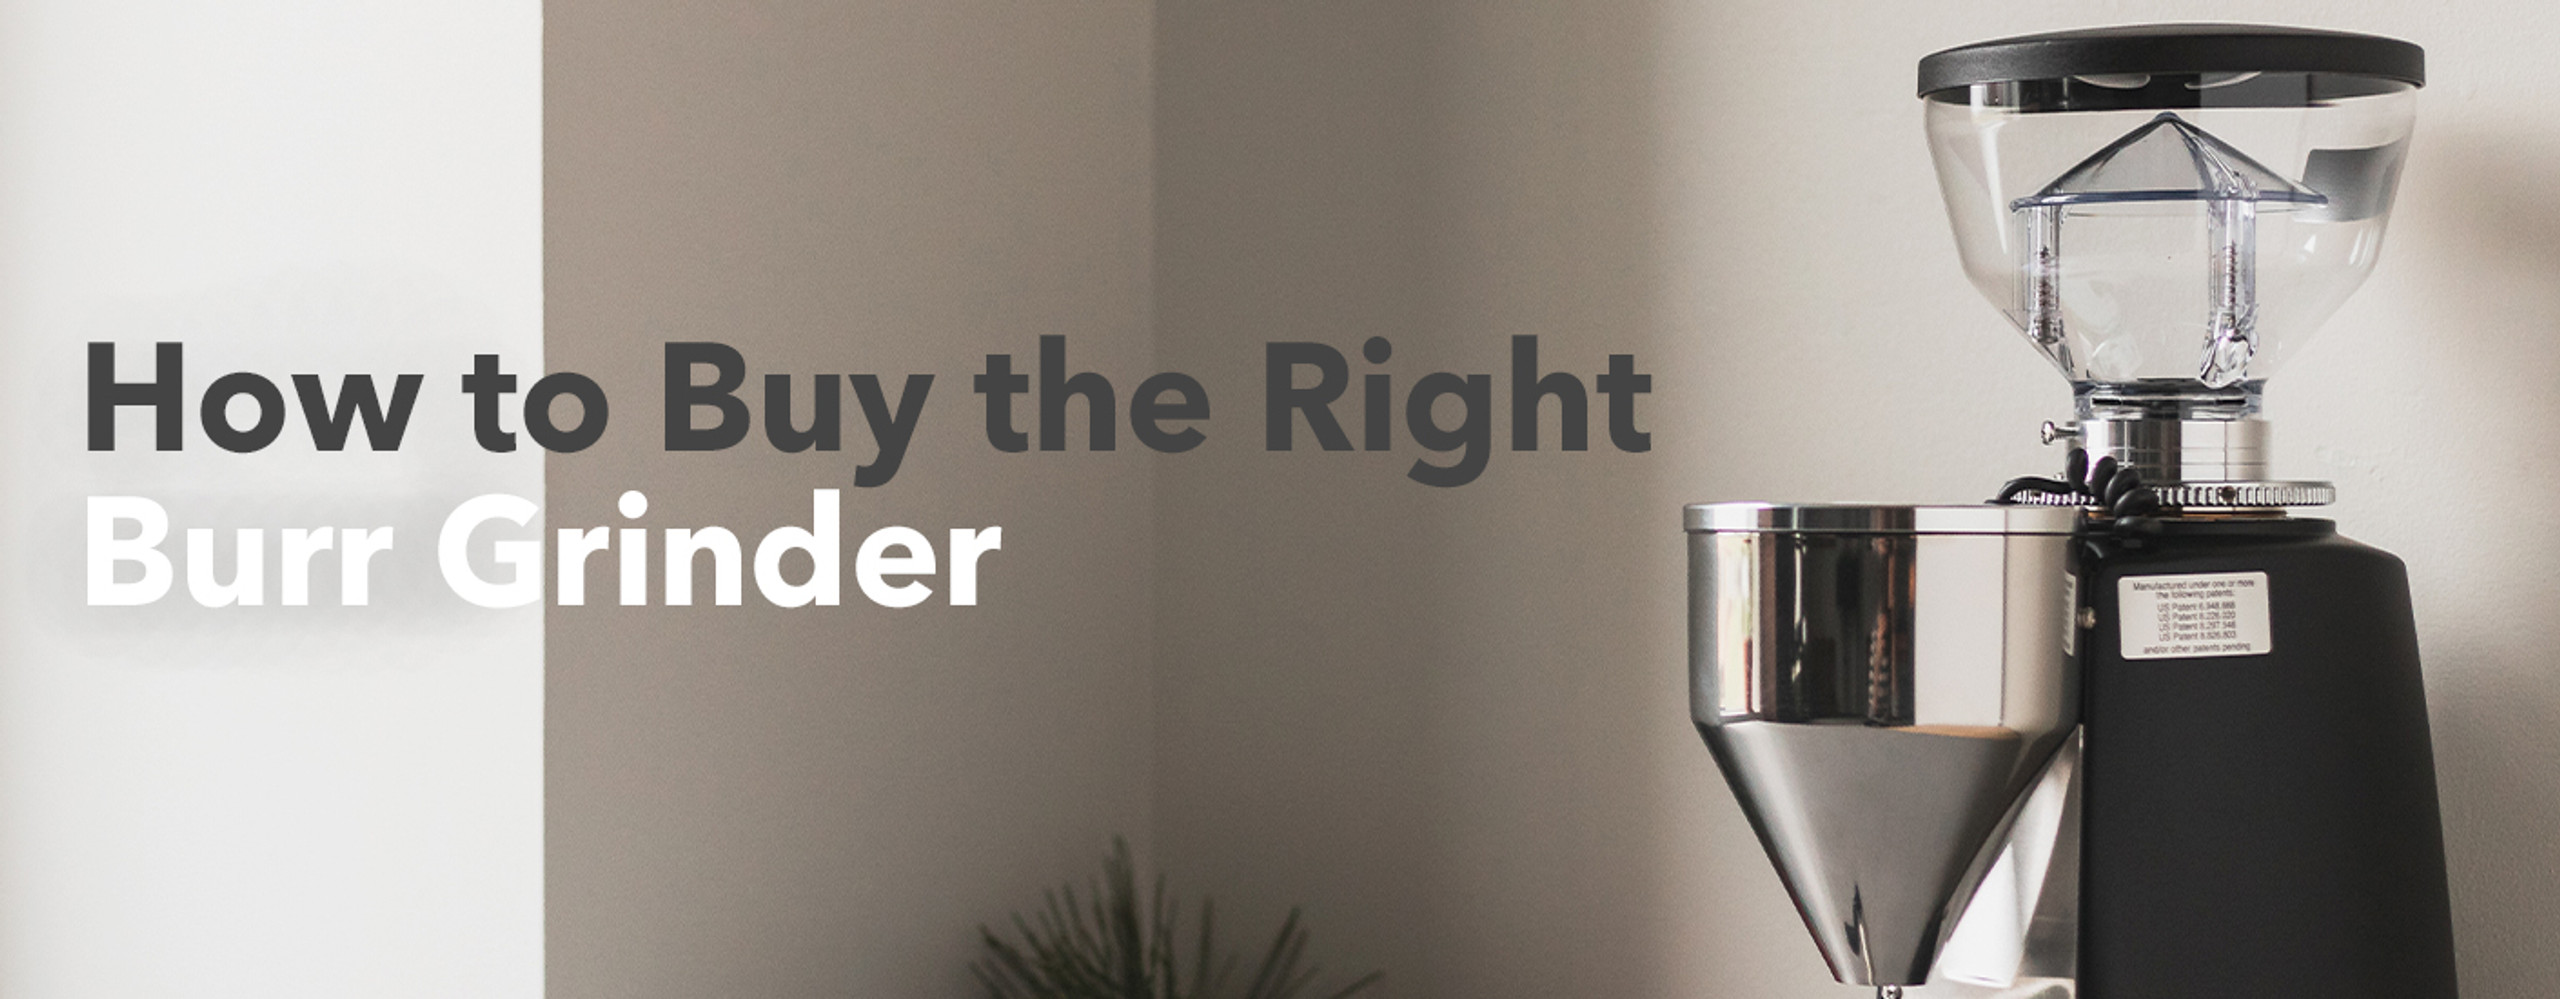 How to Buy the Right Burr Grinder